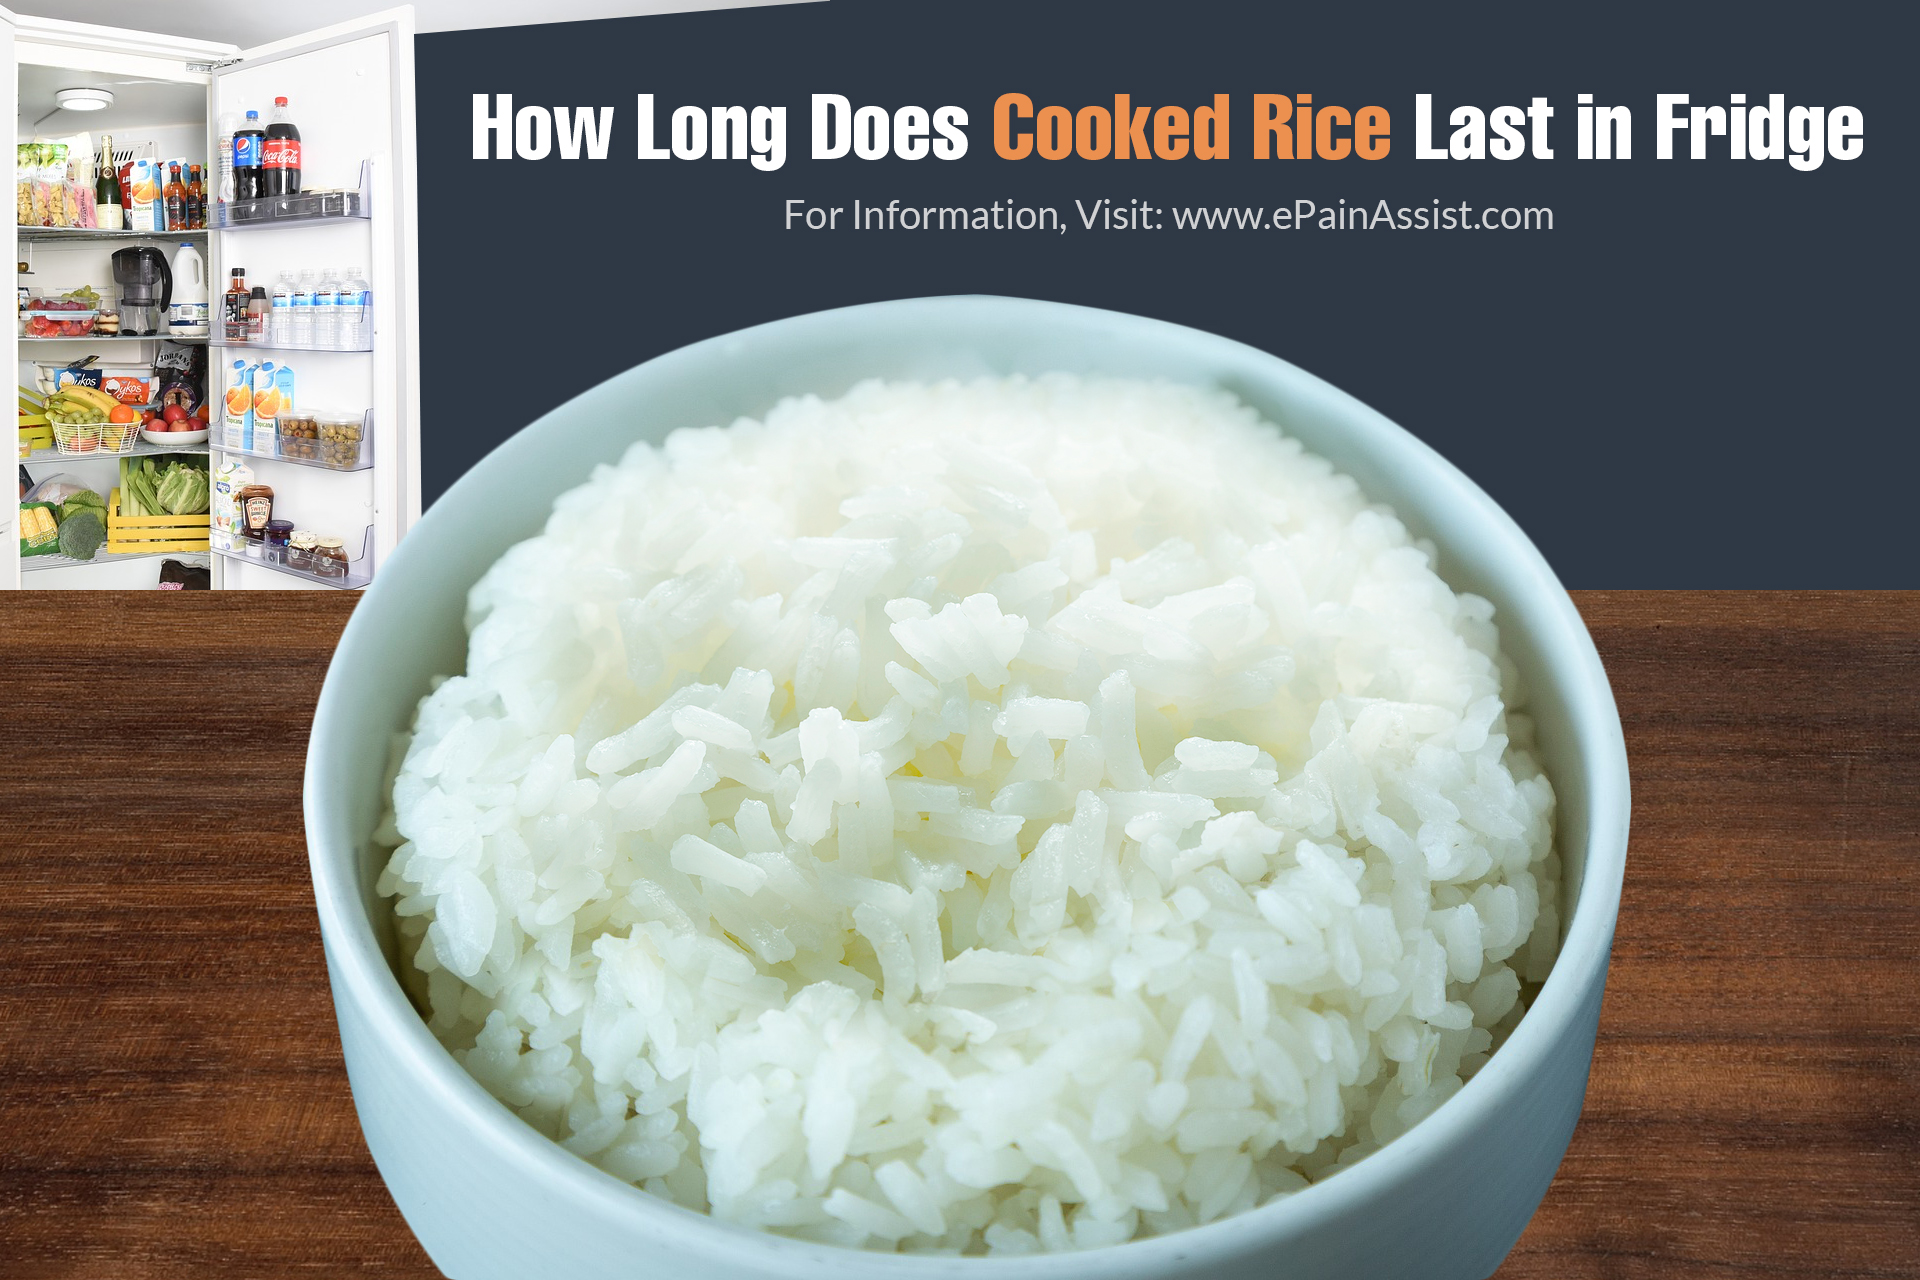 How Long Does Cooked Rice Last in Fridge?